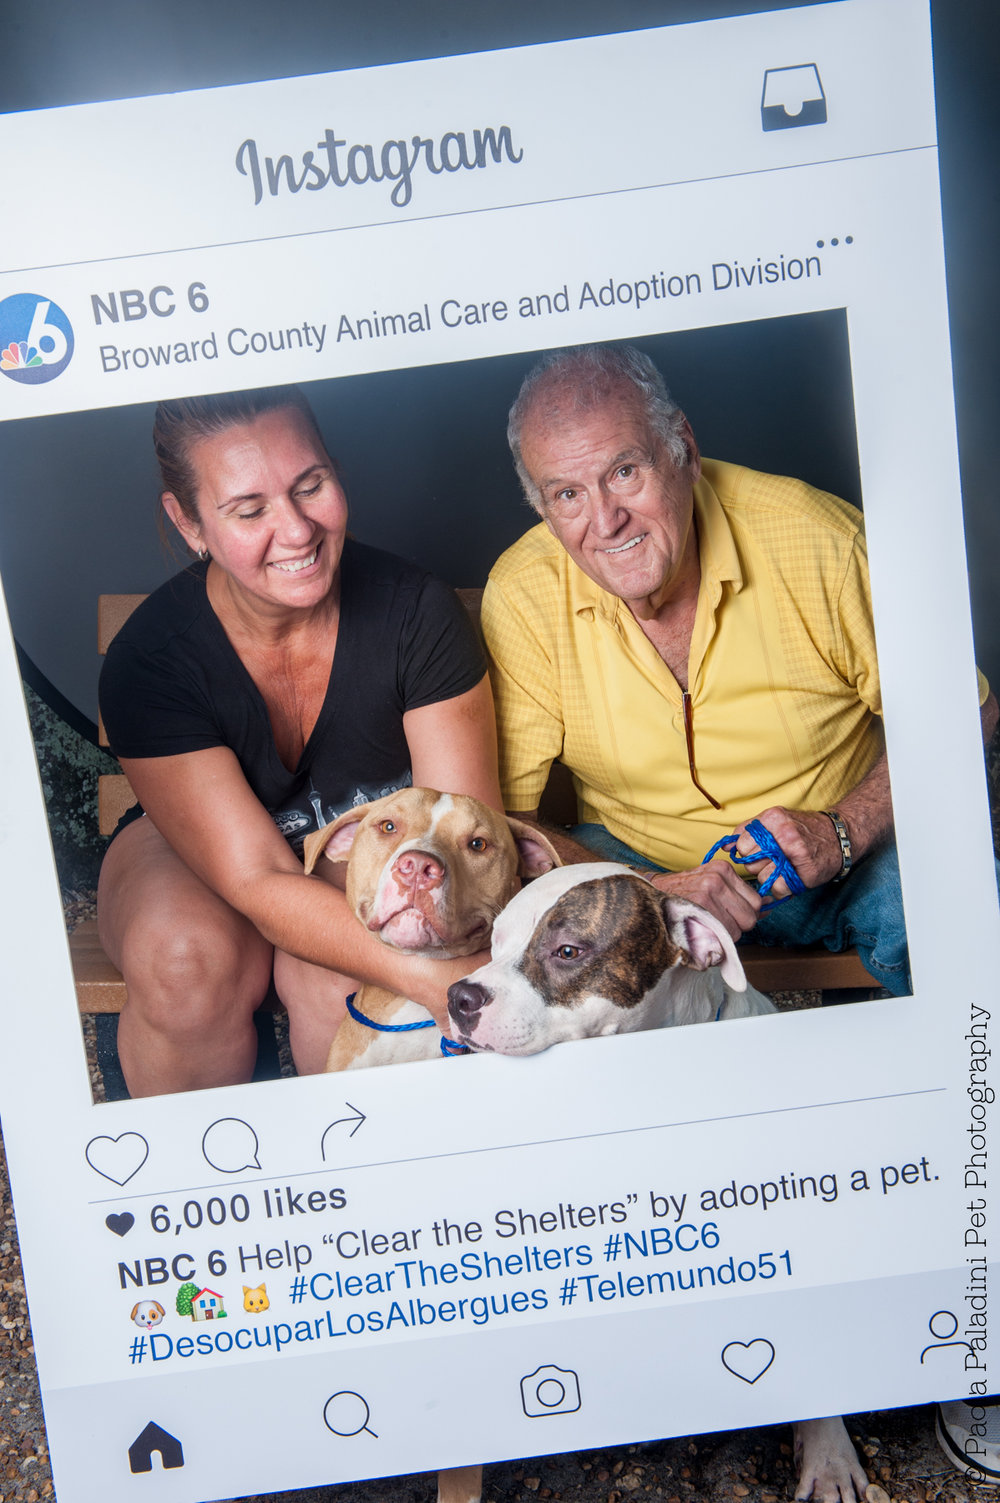 20160723-cleartheshelters-21.jpg